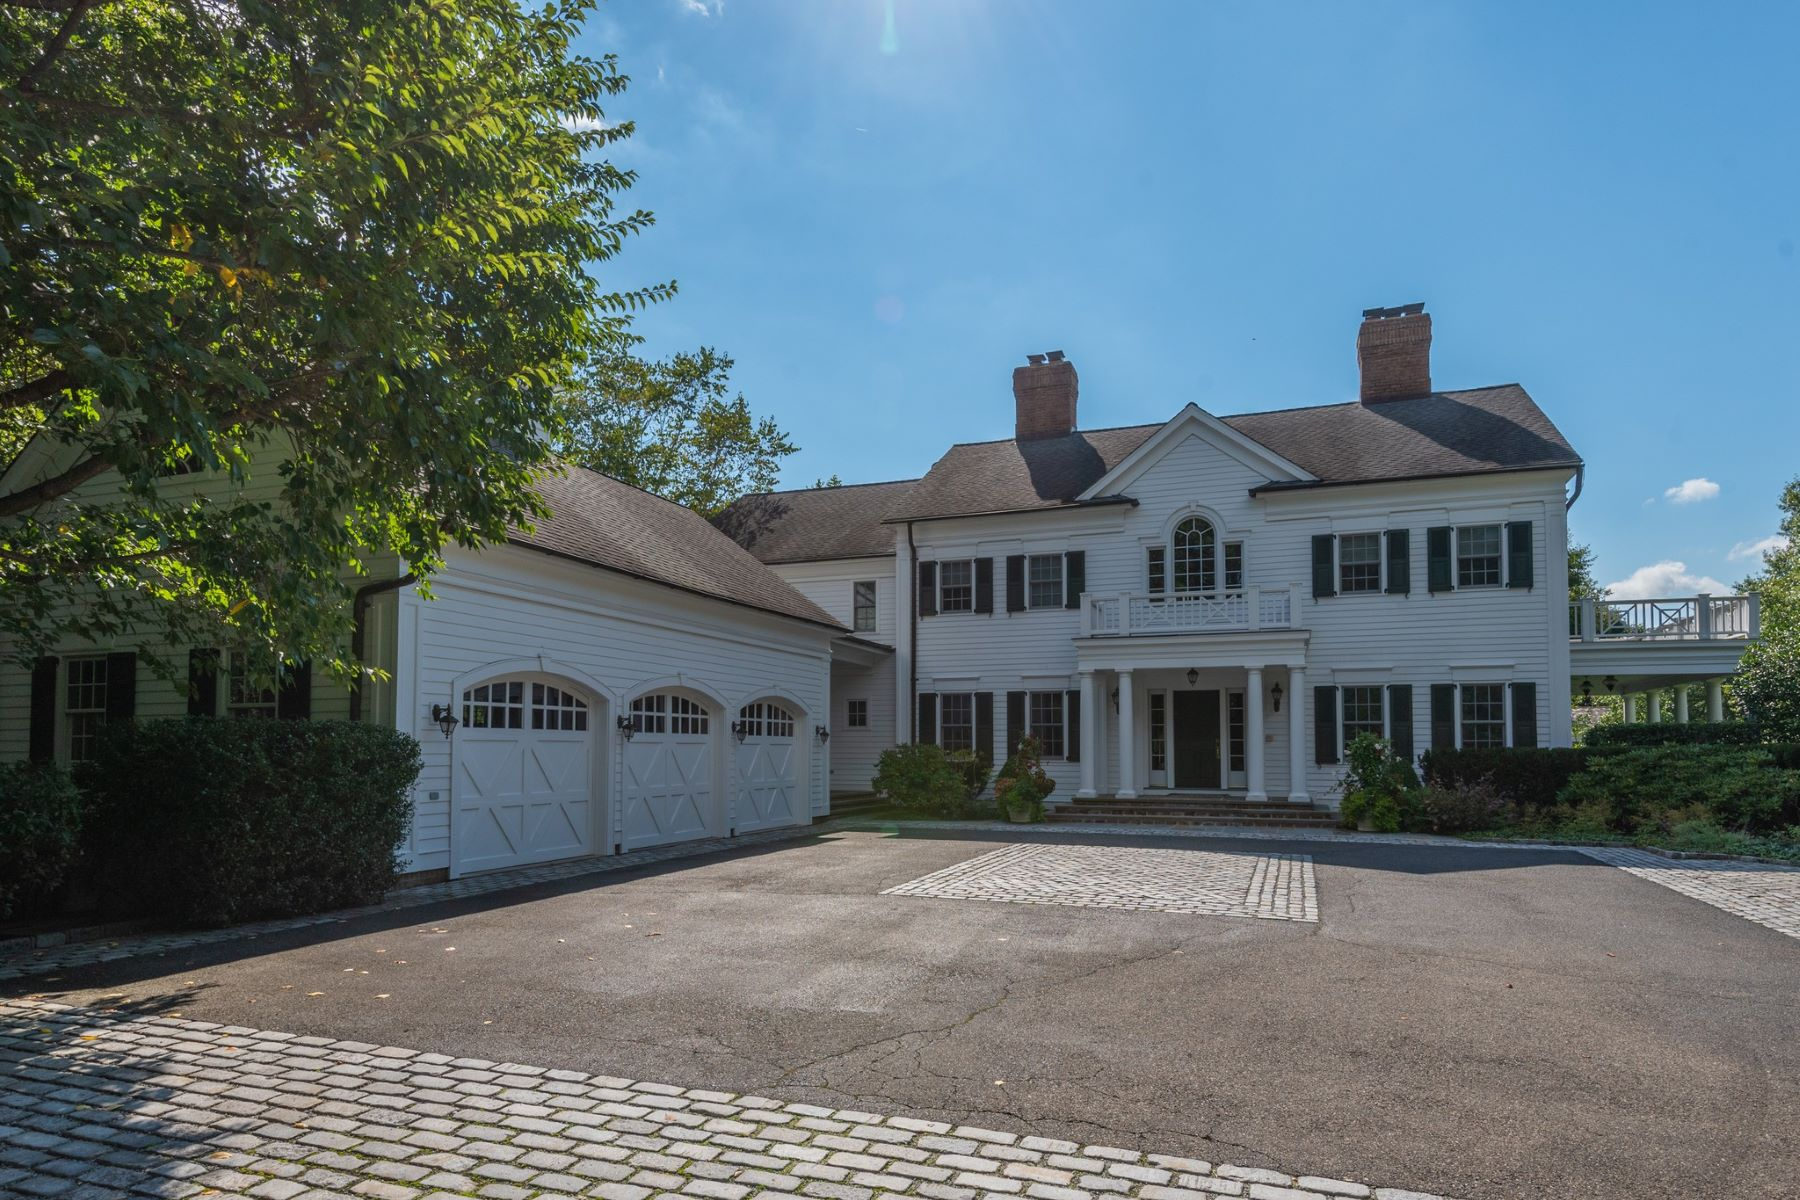 Single Family Homes for Sale at Old Westbury 2 Old Wagon Lane Old Westbury, New York 11568 United States